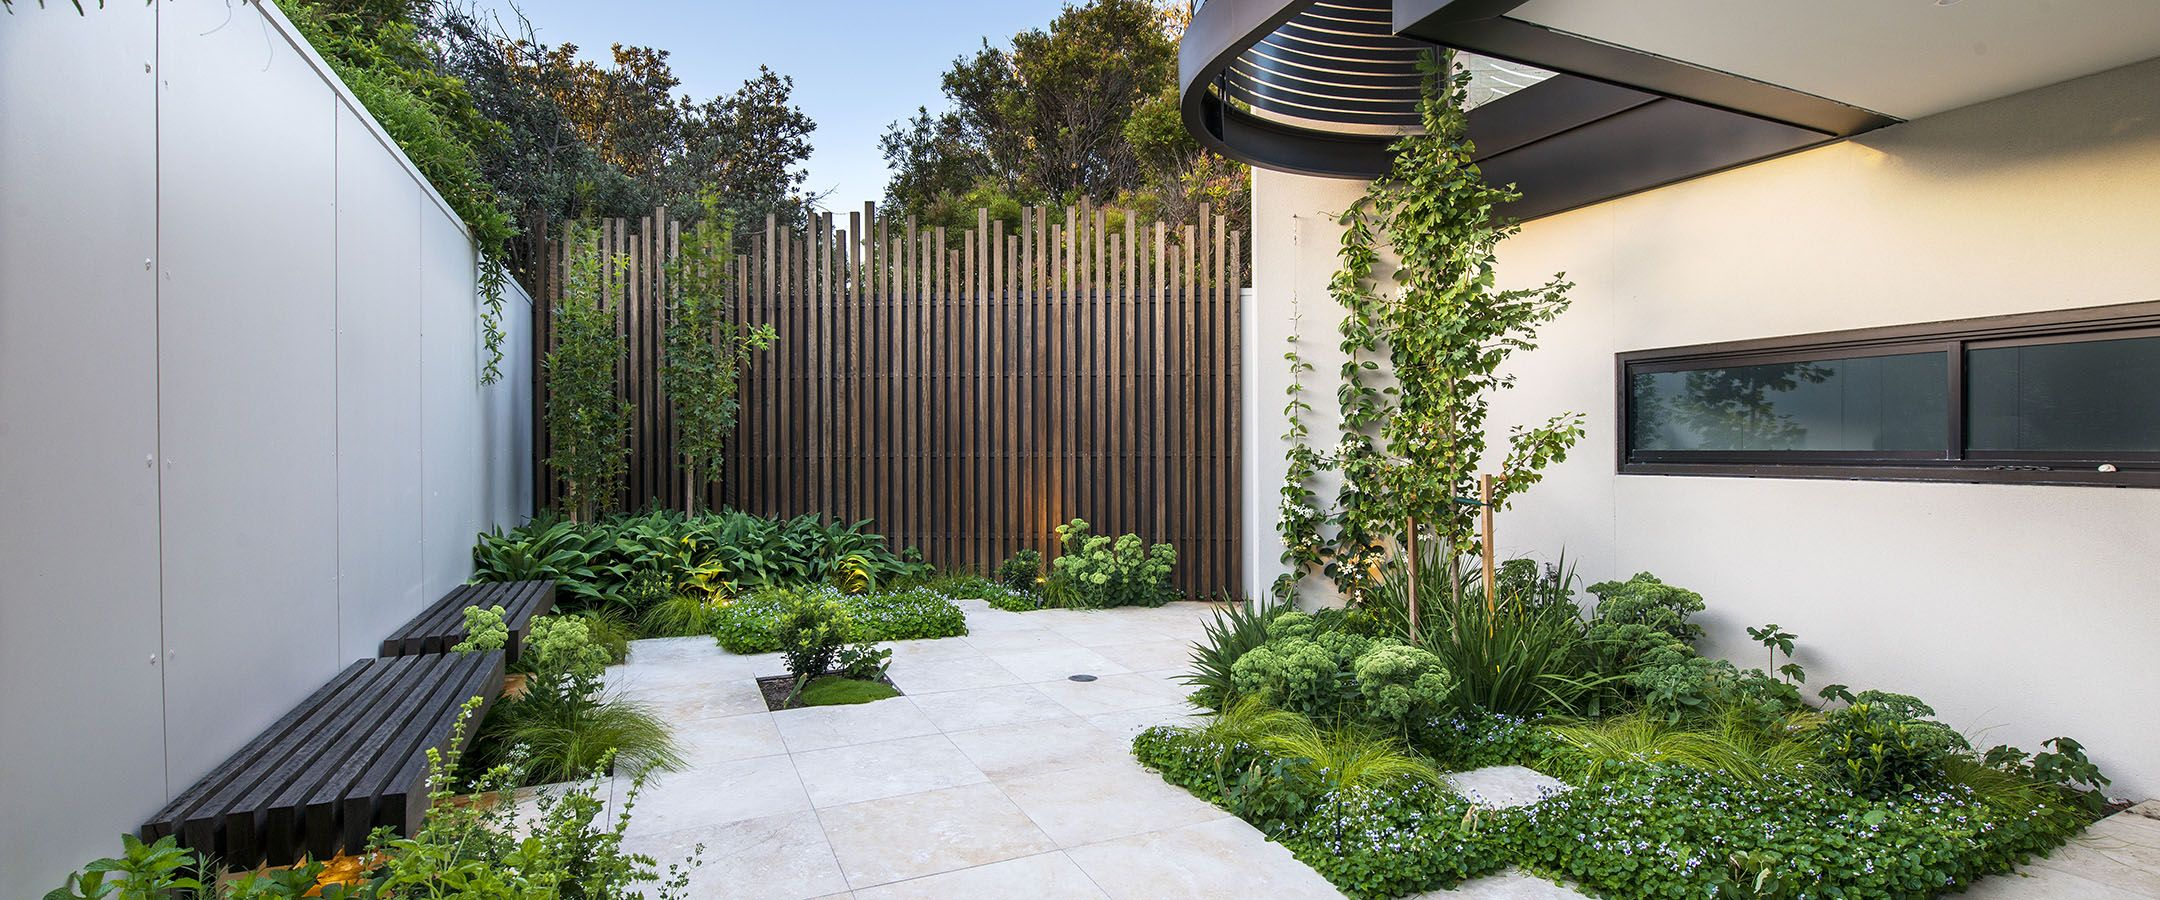 Embrace Garden Design | In touch with your inner garden | Landscape design,  Garden design, Garden design ideas inspiration